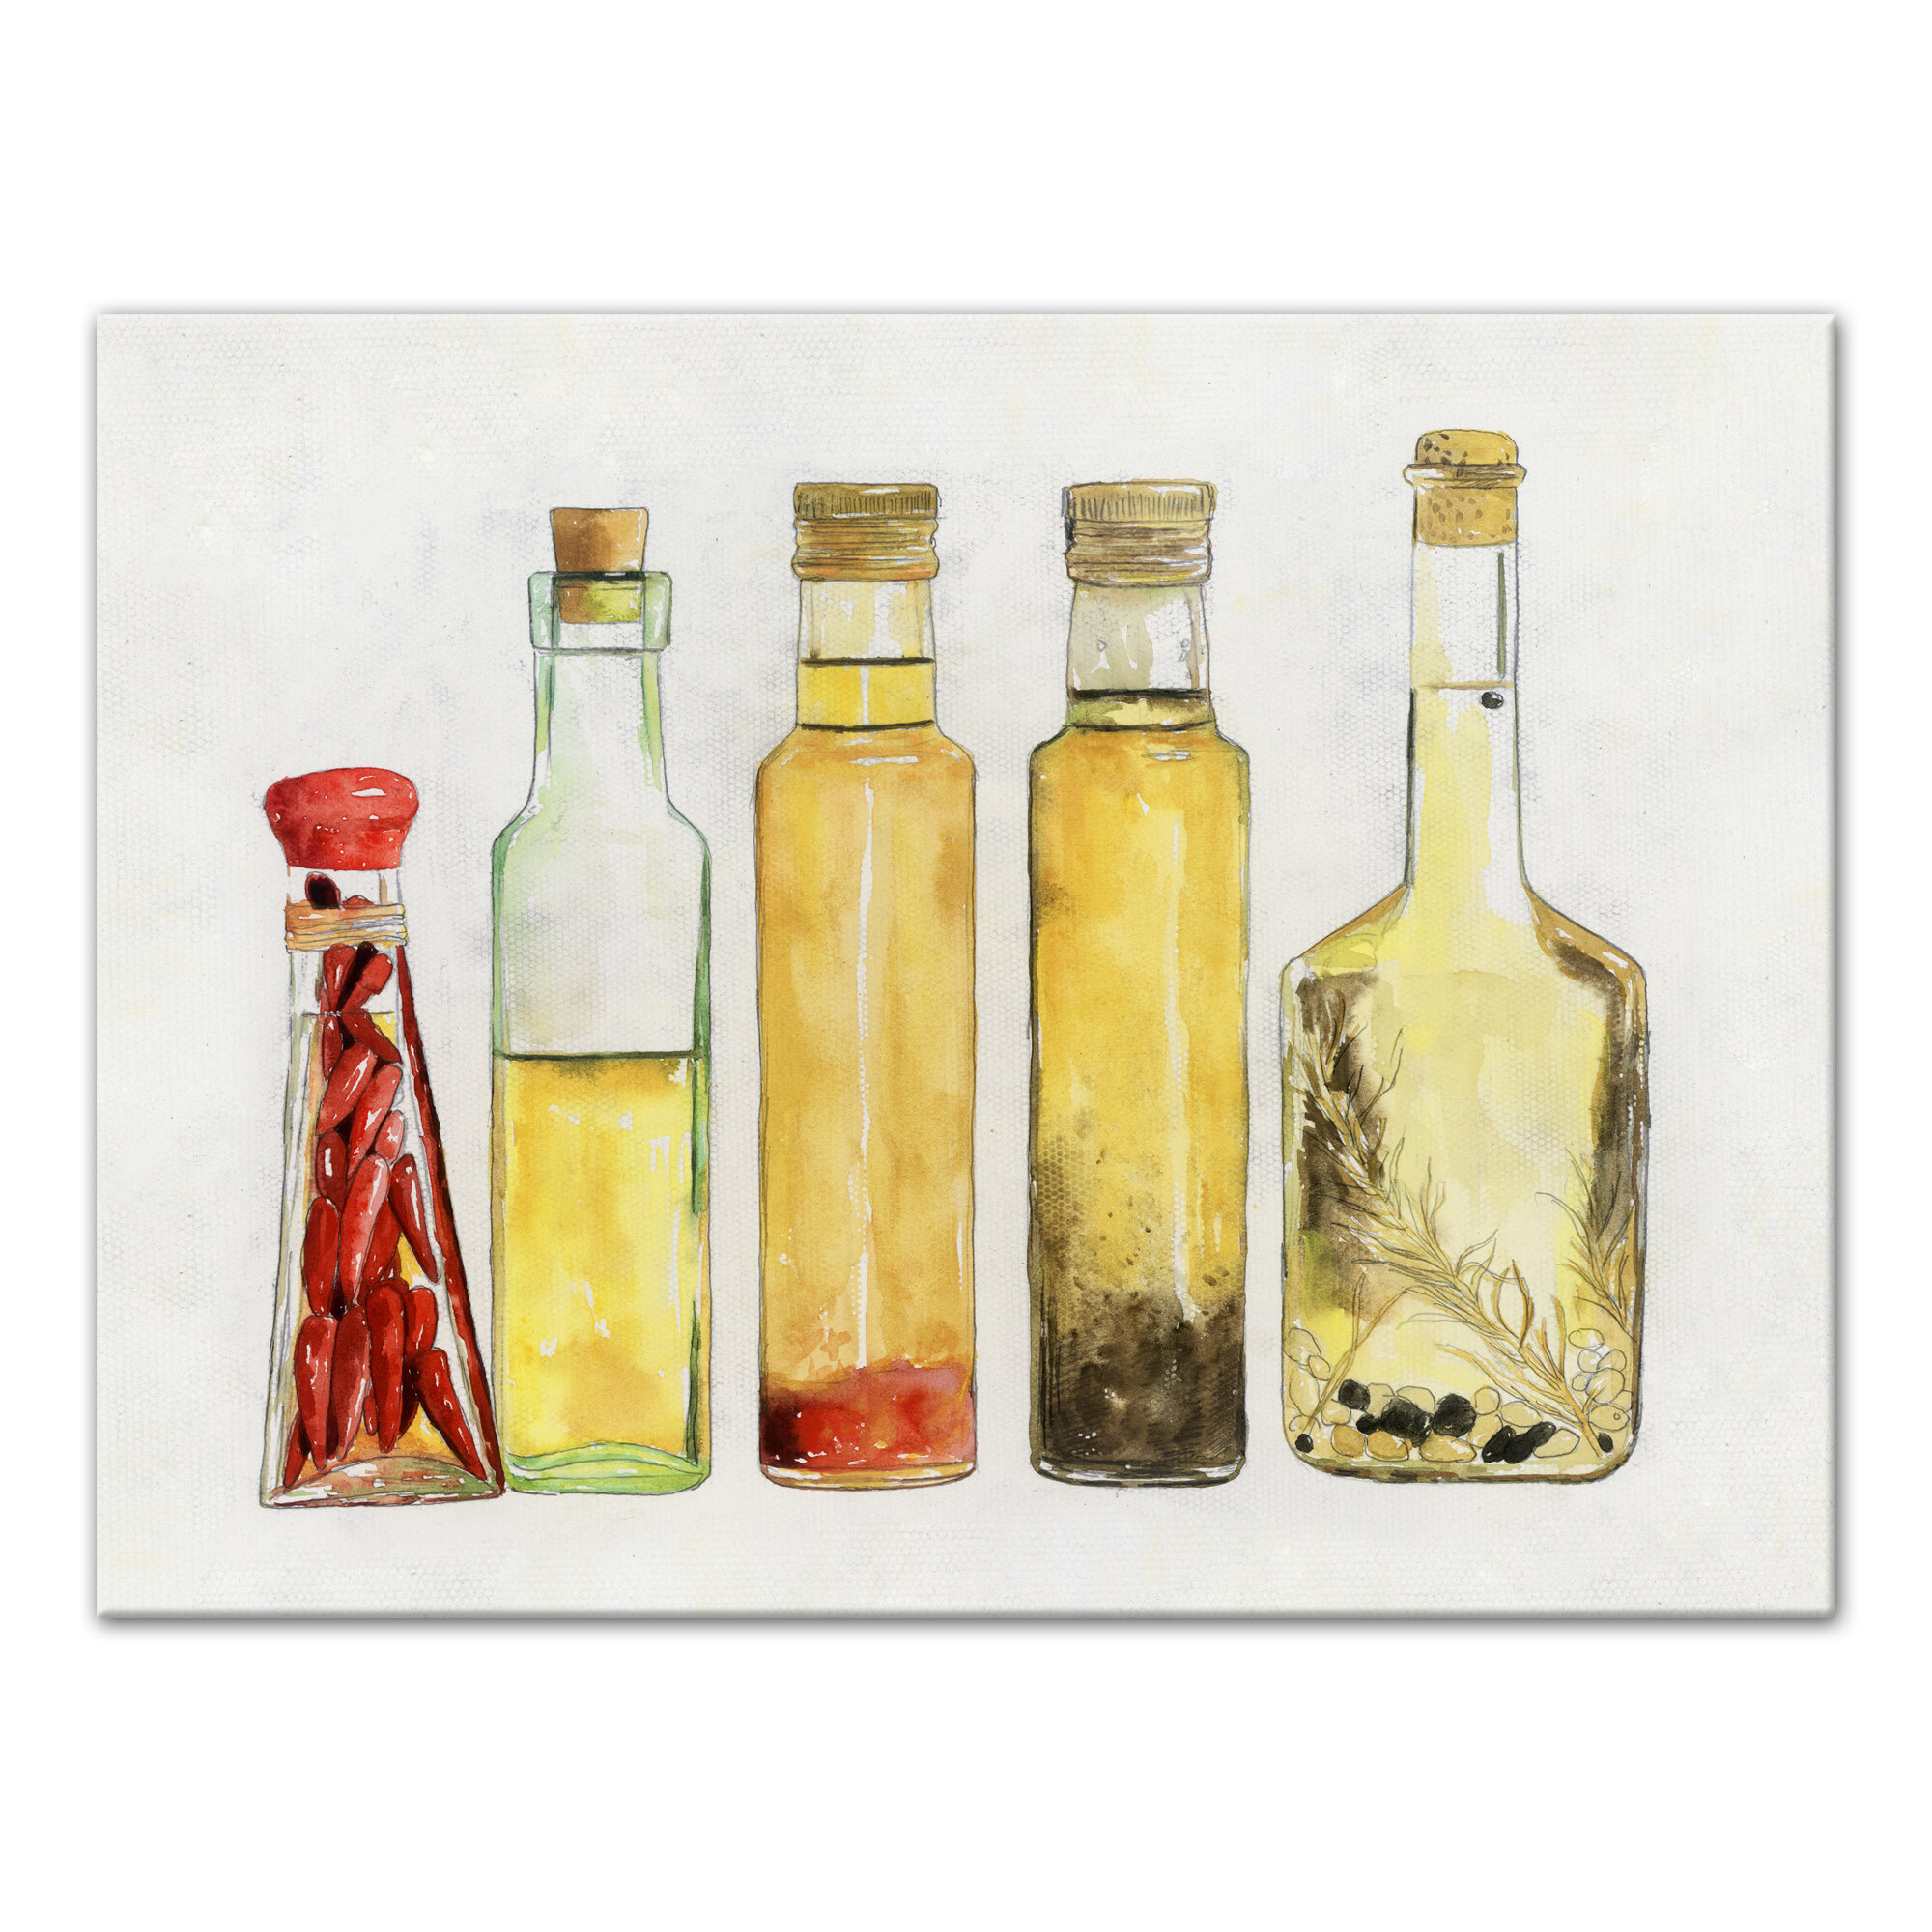 6426f9631b43 'Olive Oil Bottles' Acrylic Painting Print on Canvas